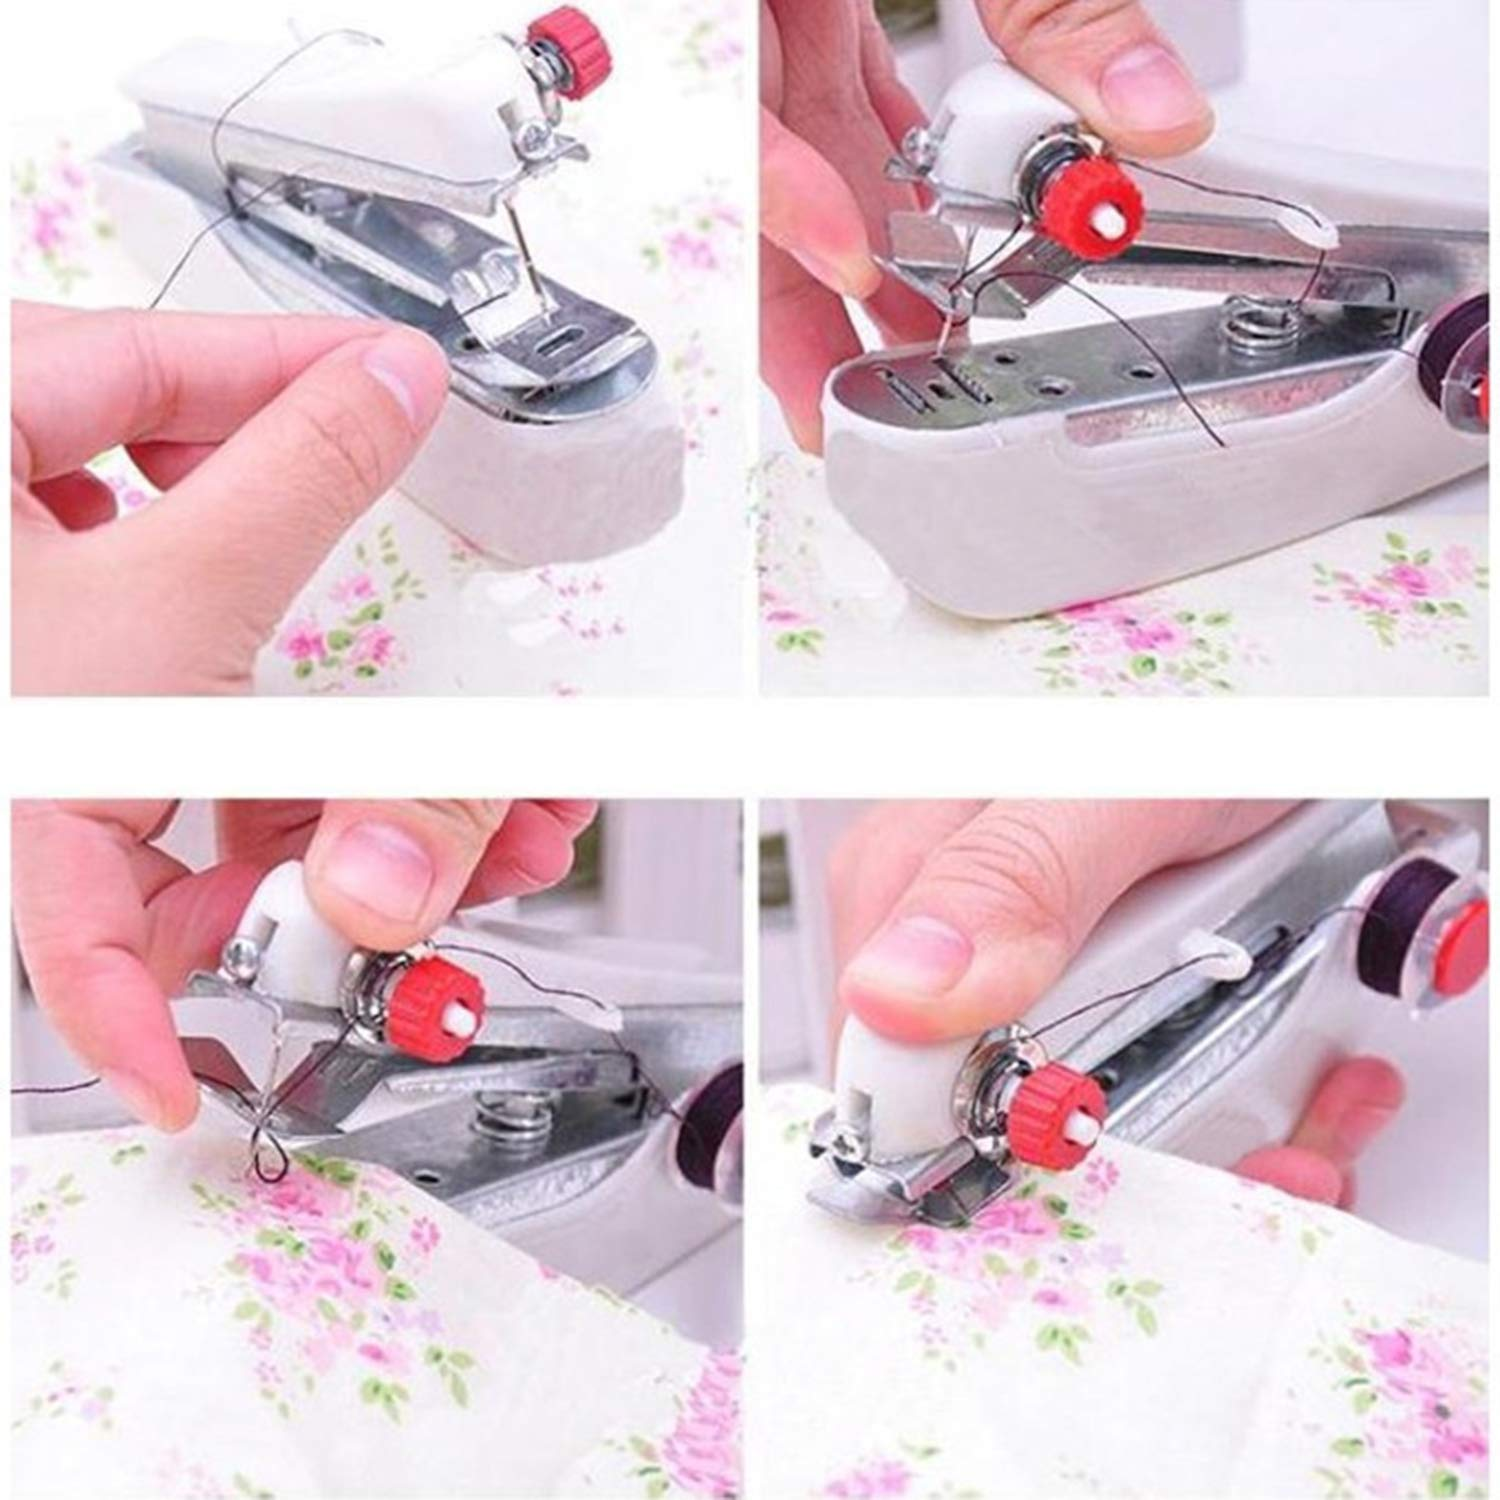 Portable Mini Handheld Sewing Machine Hand-Held Clothes Fabrics Stitch Manual Sewing Machine Travel or Household